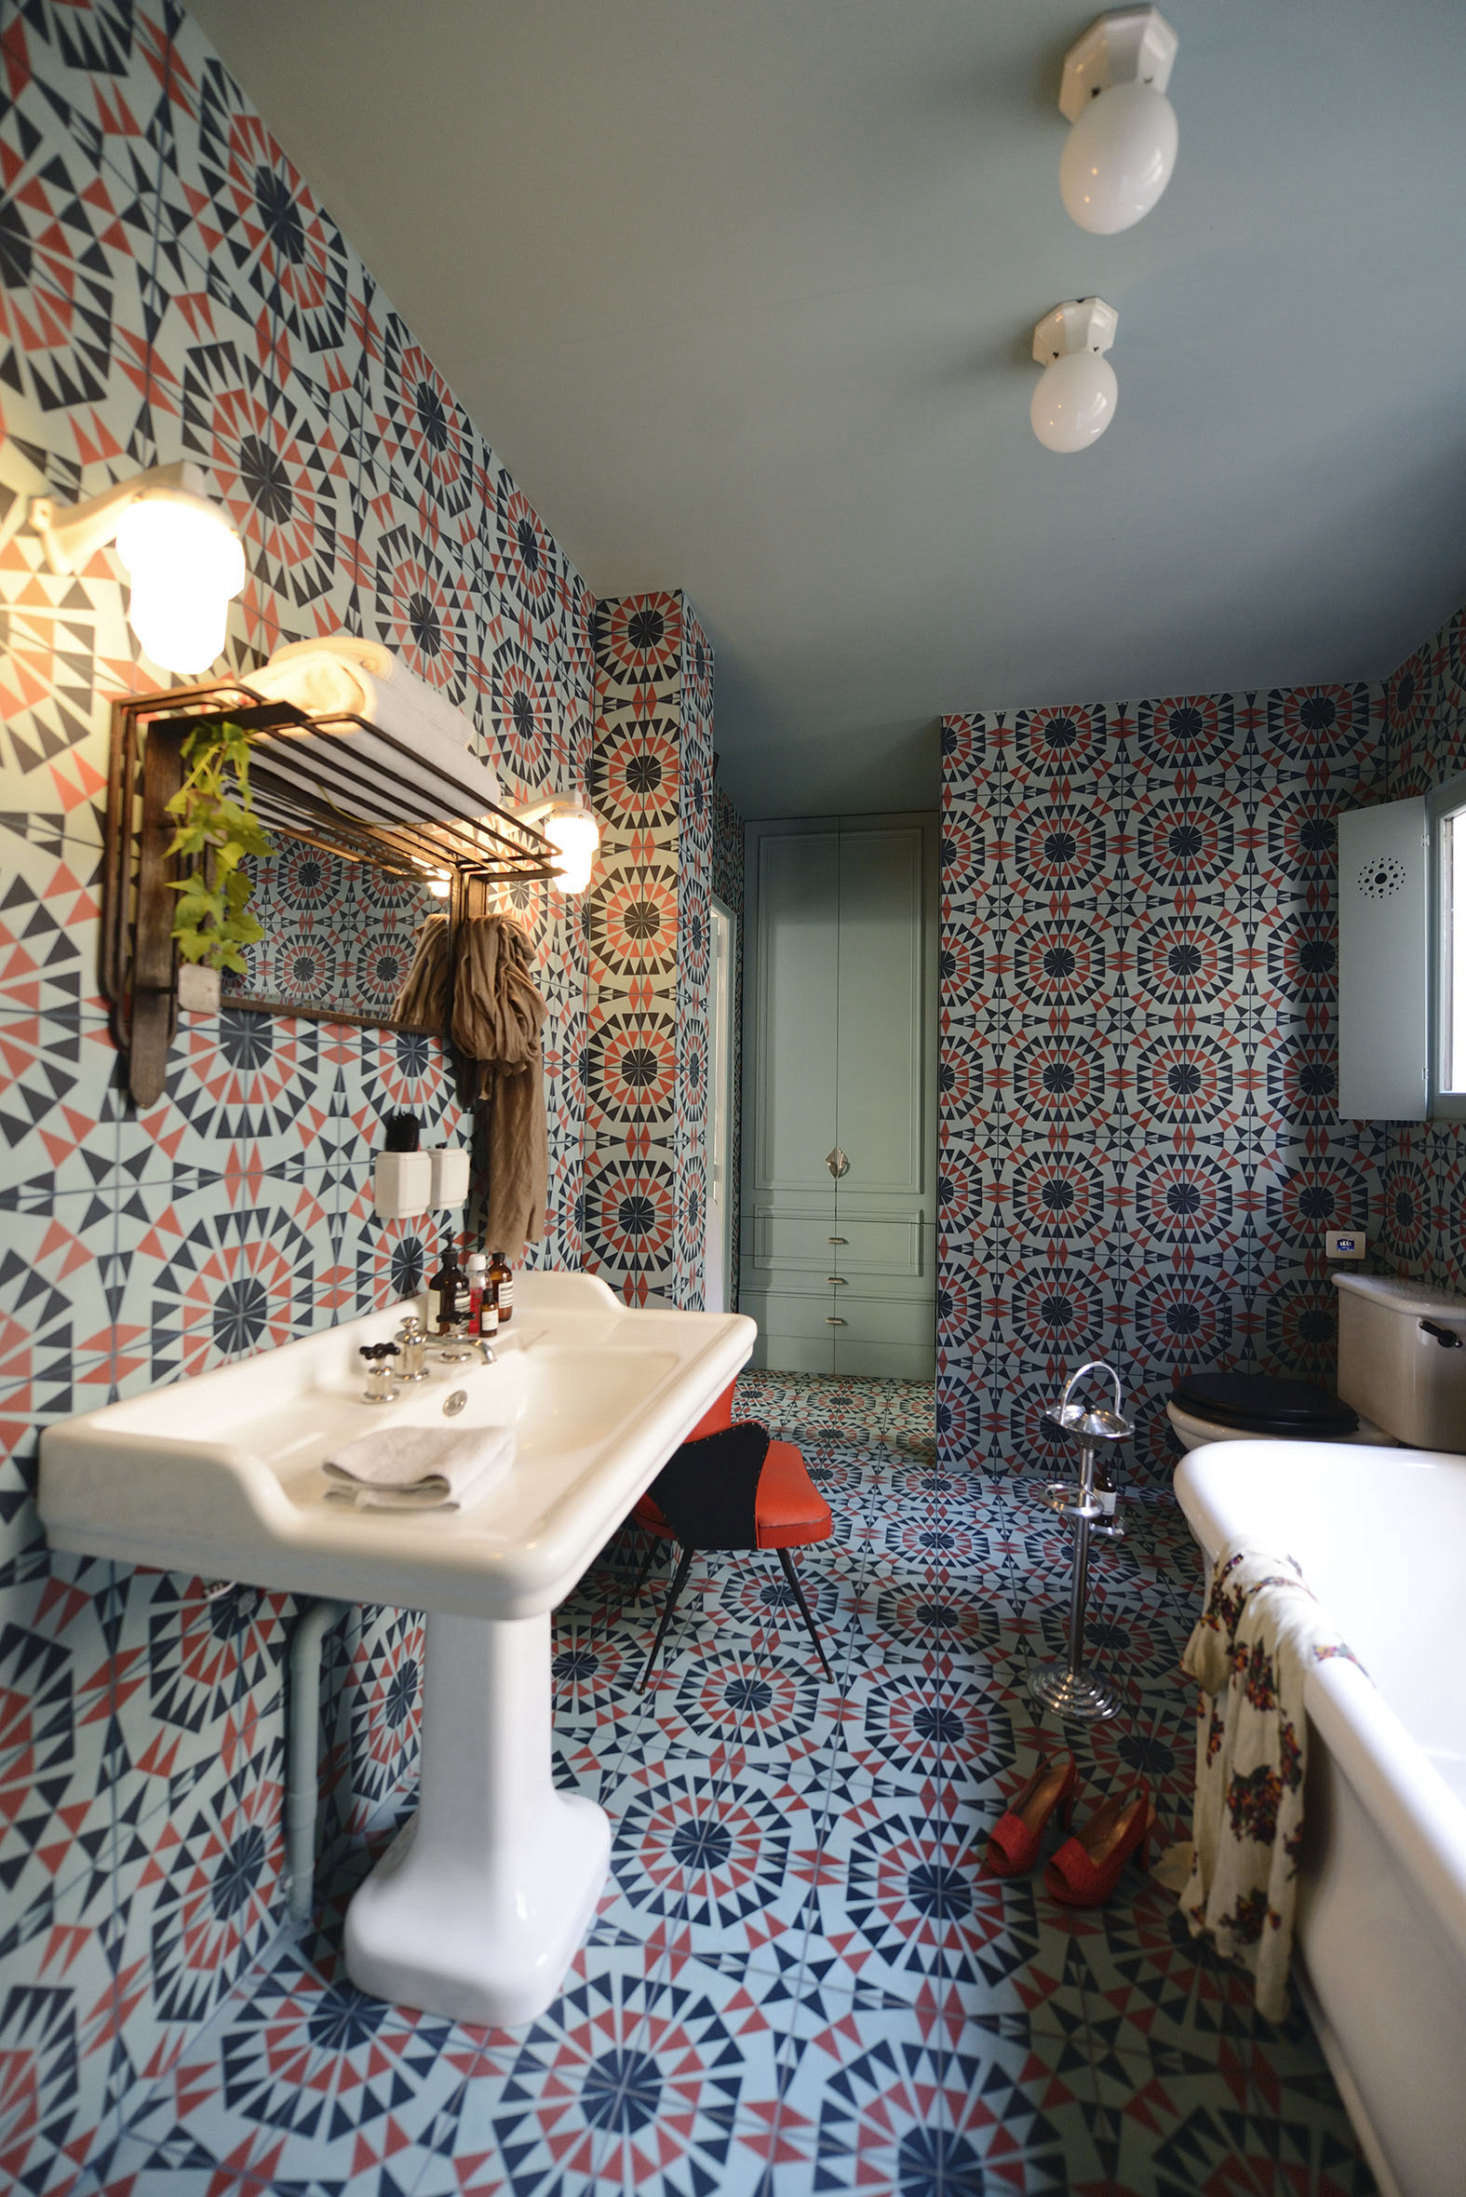 The cement tiles are in a pattern called Zocalo. Of the decision to tile not only the floor but the walls, Linde says the clients insisted: &#8